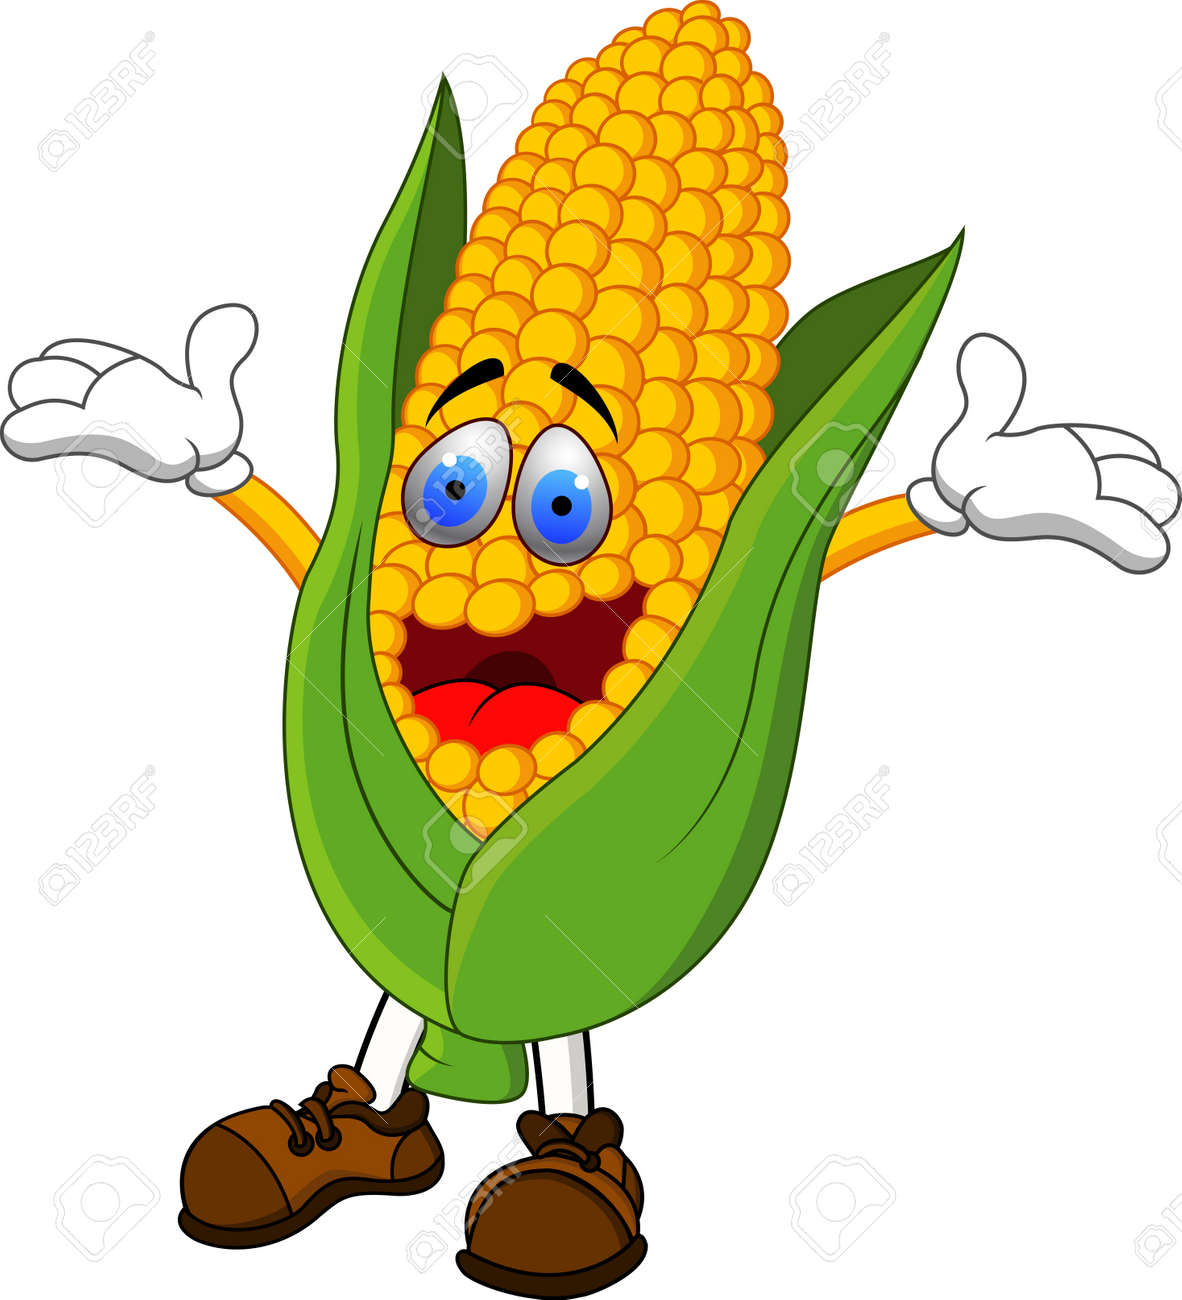 Corn On The Cob Images & Stock Pictures. Royalty Free Corn On The ...